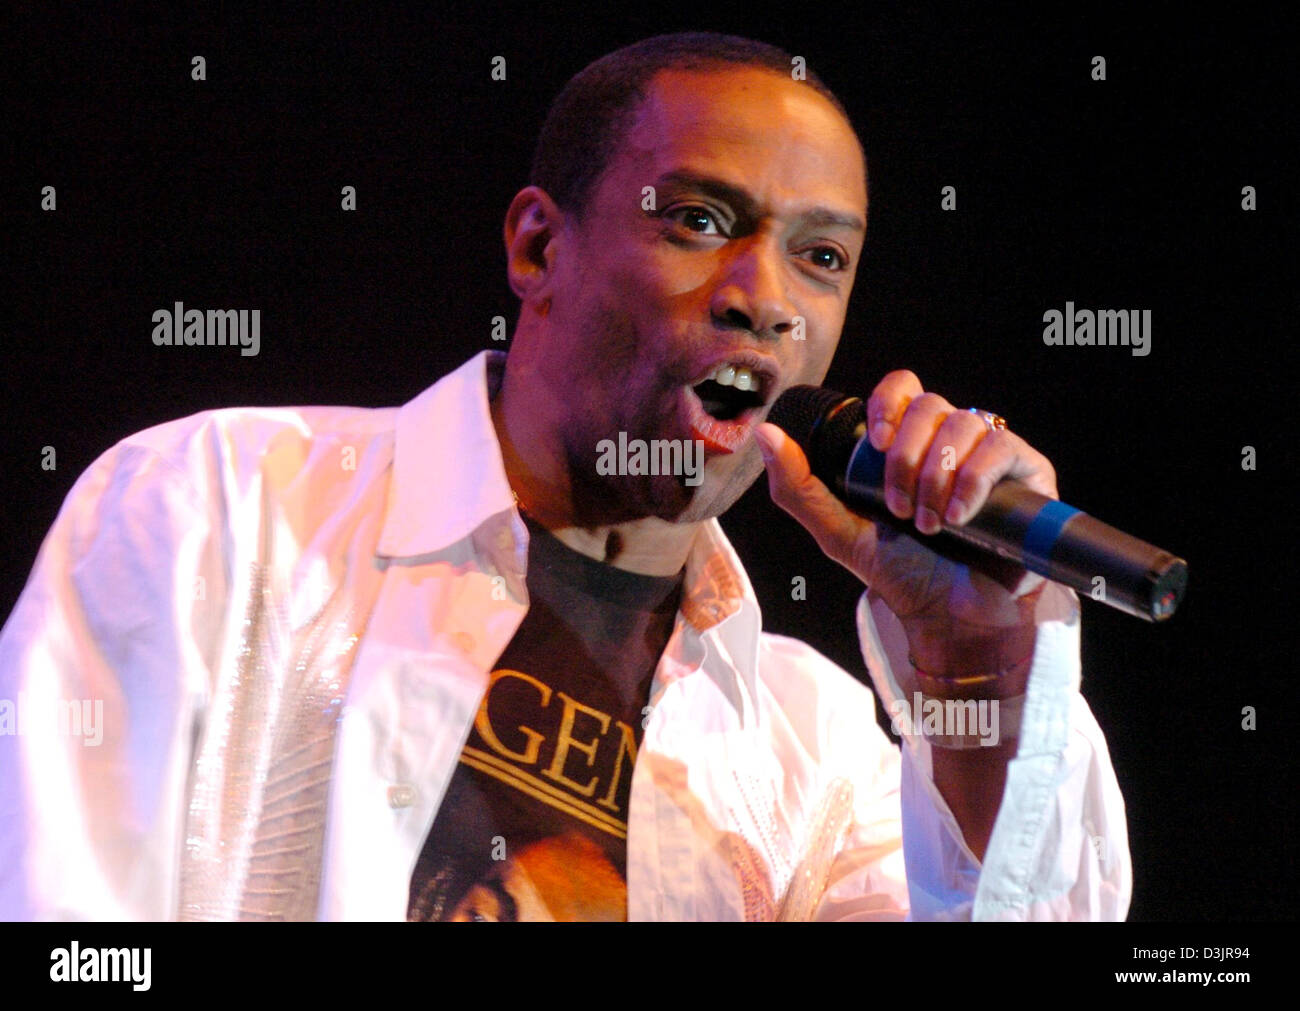 Dpa Lazy Delroy Rennalls Singer Of The German British Pop Band